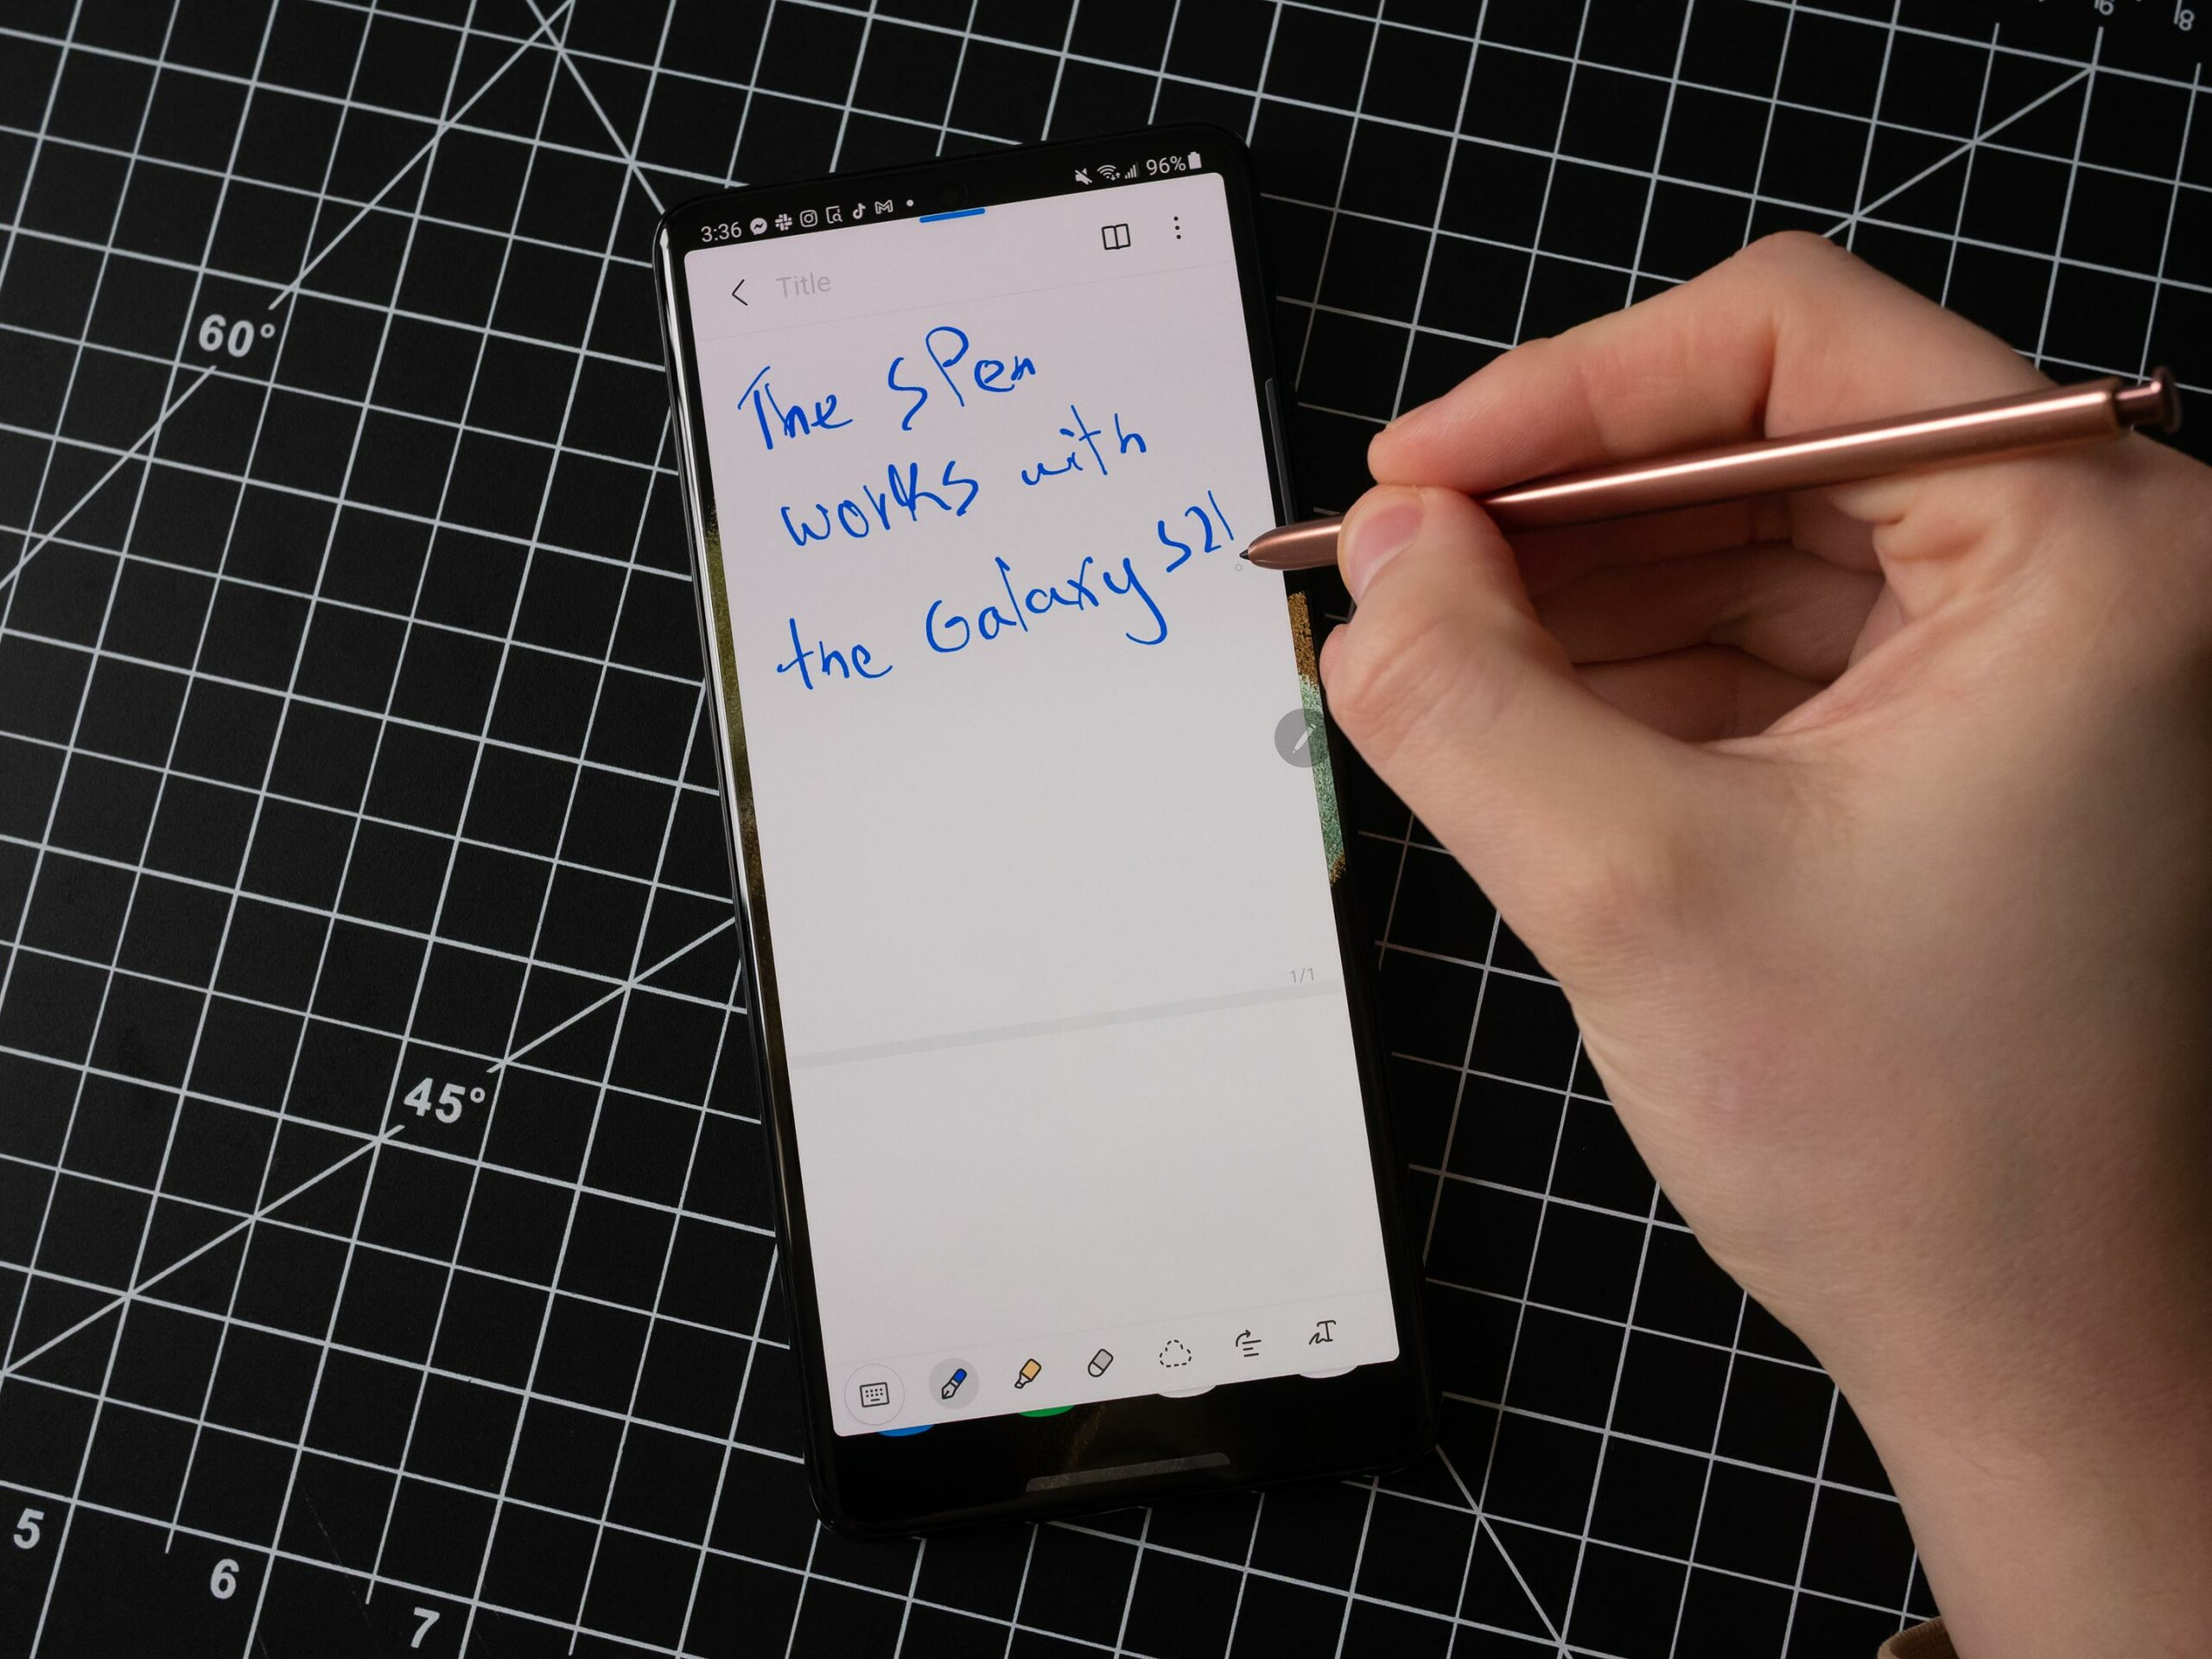 Galaxy S21 Ultra with a Note 20 Ultra S Pen